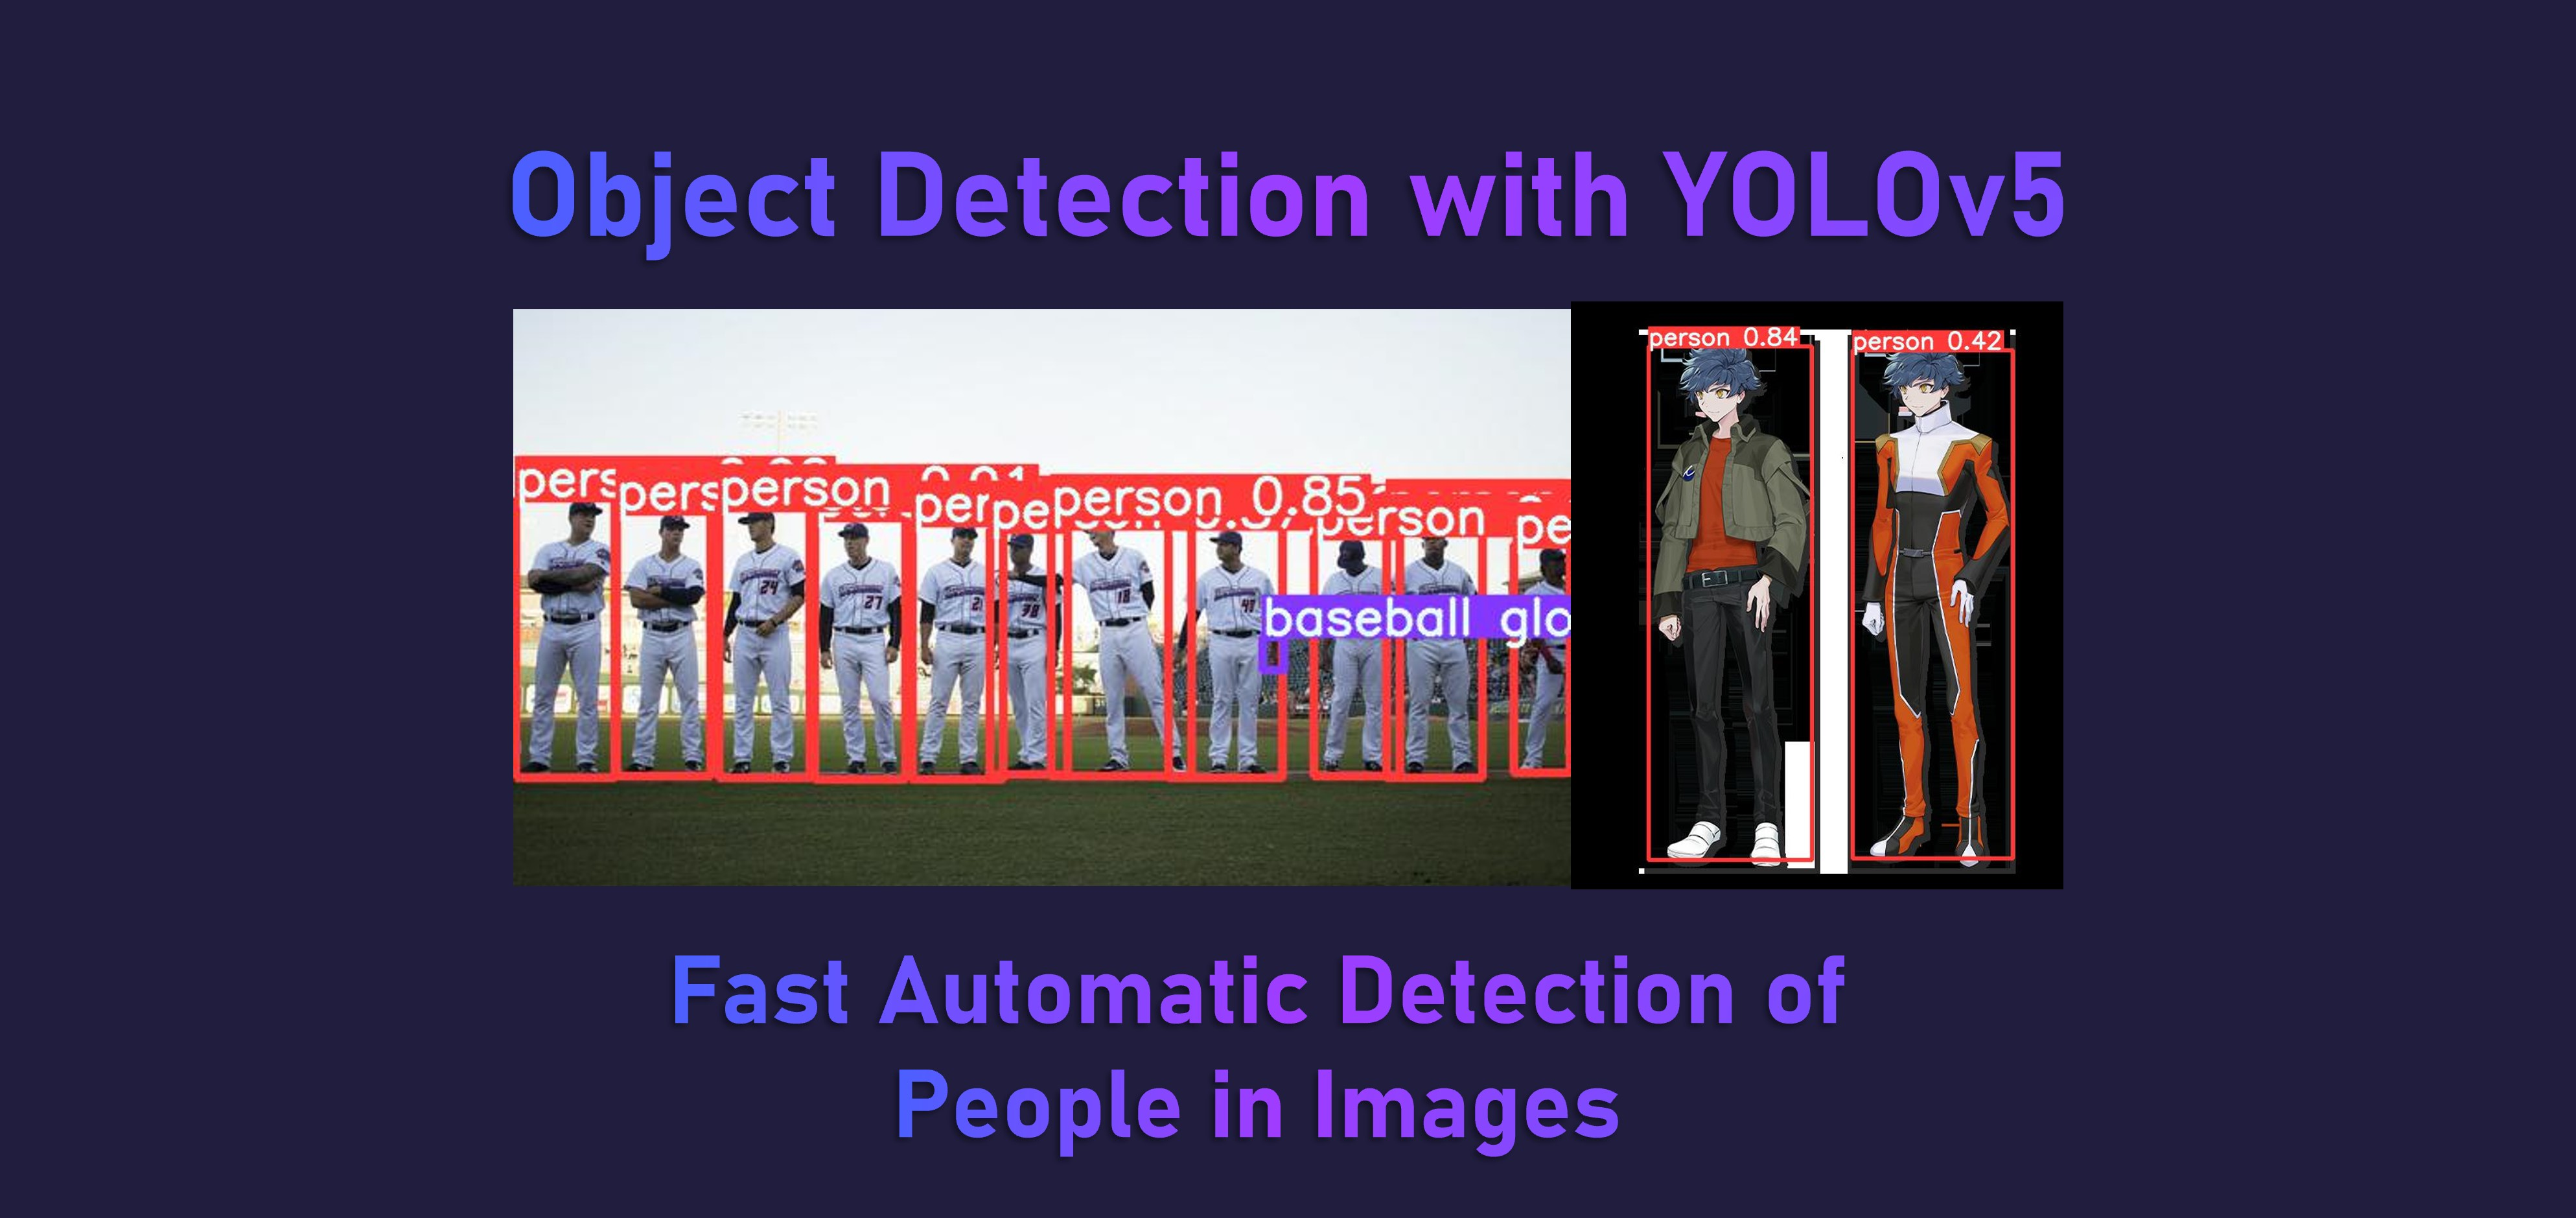 Object Detection with YOLOv5: Detecting People in Images